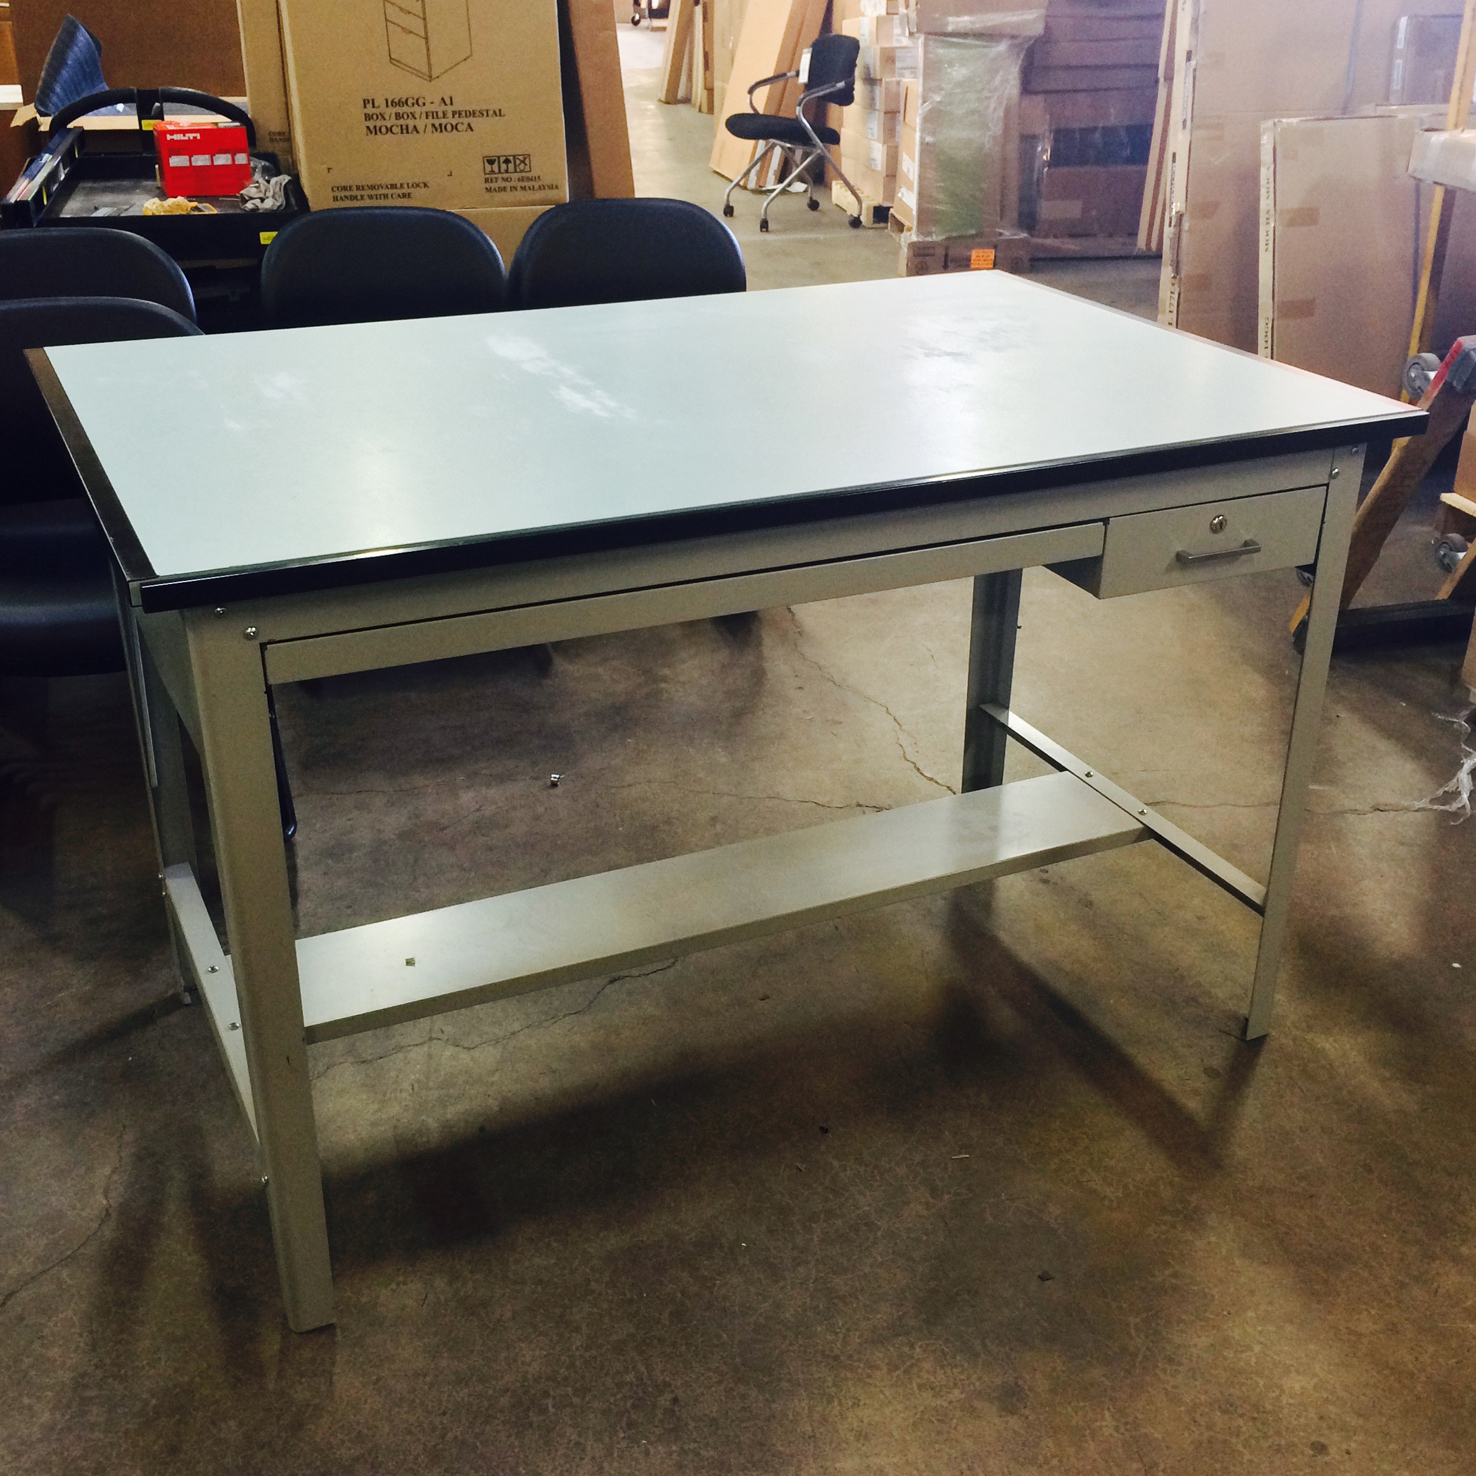 drafting table chair height cheap covers brisbane used tables - $275 sale | arthur p. o'hara, inc.